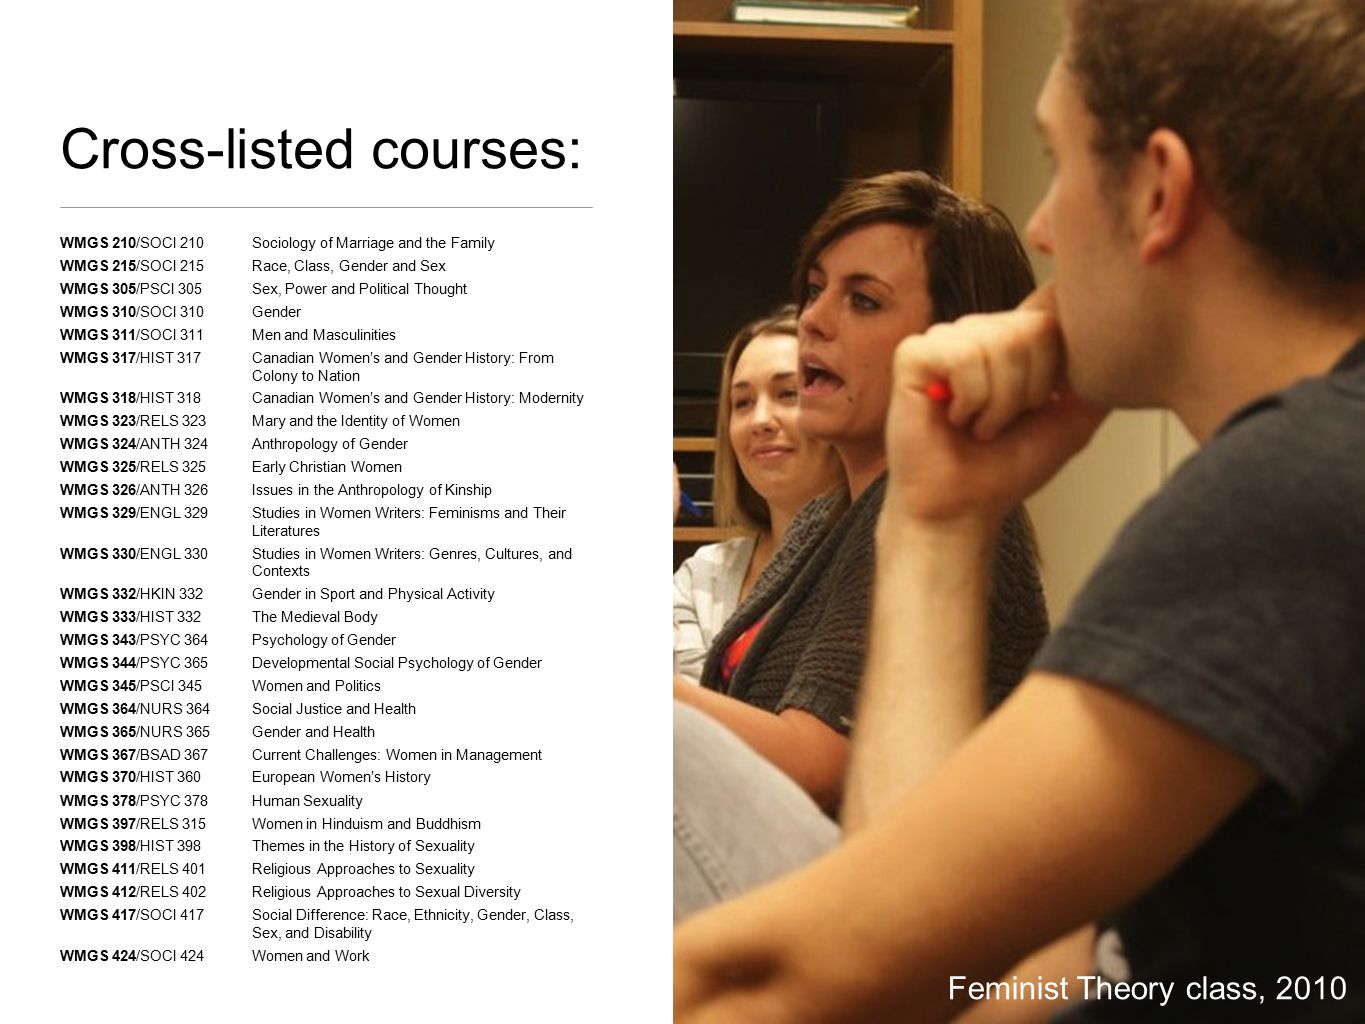 Cross-listed courses: WMGS 210/SOCI 210Sociology of Marriage and the Family WMGS 215/SOCI 215Race, Class, Gender and Sex WMGS 305/PSCI 305Sex, Power and Political Thought WMGS 310/SOCI 310Gender WMGS 311/SOCI 311Men and Masculinities WMGS 317/HIST 317Canadian Women's and Gender History: From Colony to Nation WMGS 318/HIST 318Canadian Women's and Gender History: Modernity WMGS 323/RELS 323Mary and the Identity of Women WMGS 324/ANTH 324 Anthropology of Gender WMGS 325/RELS 325 Early Christian Women WMGS 326/ANTH 326 Issues in the Anthropology of Kinship WMGS 329/ENGL 329 Studies in Women Writers: Feminisms and Their Literatures WMGS 330/ENGL 330 Studies in Women Writers: Genres, Cultures, and Contexts WMGS 332/HKIN 332Gender in Sport and Physical Activity WMGS 333/HIST 332The Medieval Body WMGS 343/PSYC 364Psychology of Gender WMGS 344/PSYC 365Developmental Social Psychology of Gender WMGS 345/PSCI 345Women and Politics WMGS 364/NURS 364 Social Justice and Health WMGS 365/NURS 365 Gender and Health WMGS 367/BSAD 367Current Challenges: Women in Management WMGS 370/HIST 360European Women's History WMGS 378/PSYC 378Human Sexuality WMGS 397/RELS 315Women in Hinduism and Buddhism WMGS 398/HIST 398Themes in the History of Sexuality WMGS 411/RELS 401Religious Approaches to Sexuality WMGS 412/RELS 402Religious Approaches to Sexual Diversity WMGS 417/SOCI 417Social Difference: Race, Ethnicity, Gender, Class, Sex, and Disability WMGS 424/SOCI 424Women and Work Feminist Theory class, 2010